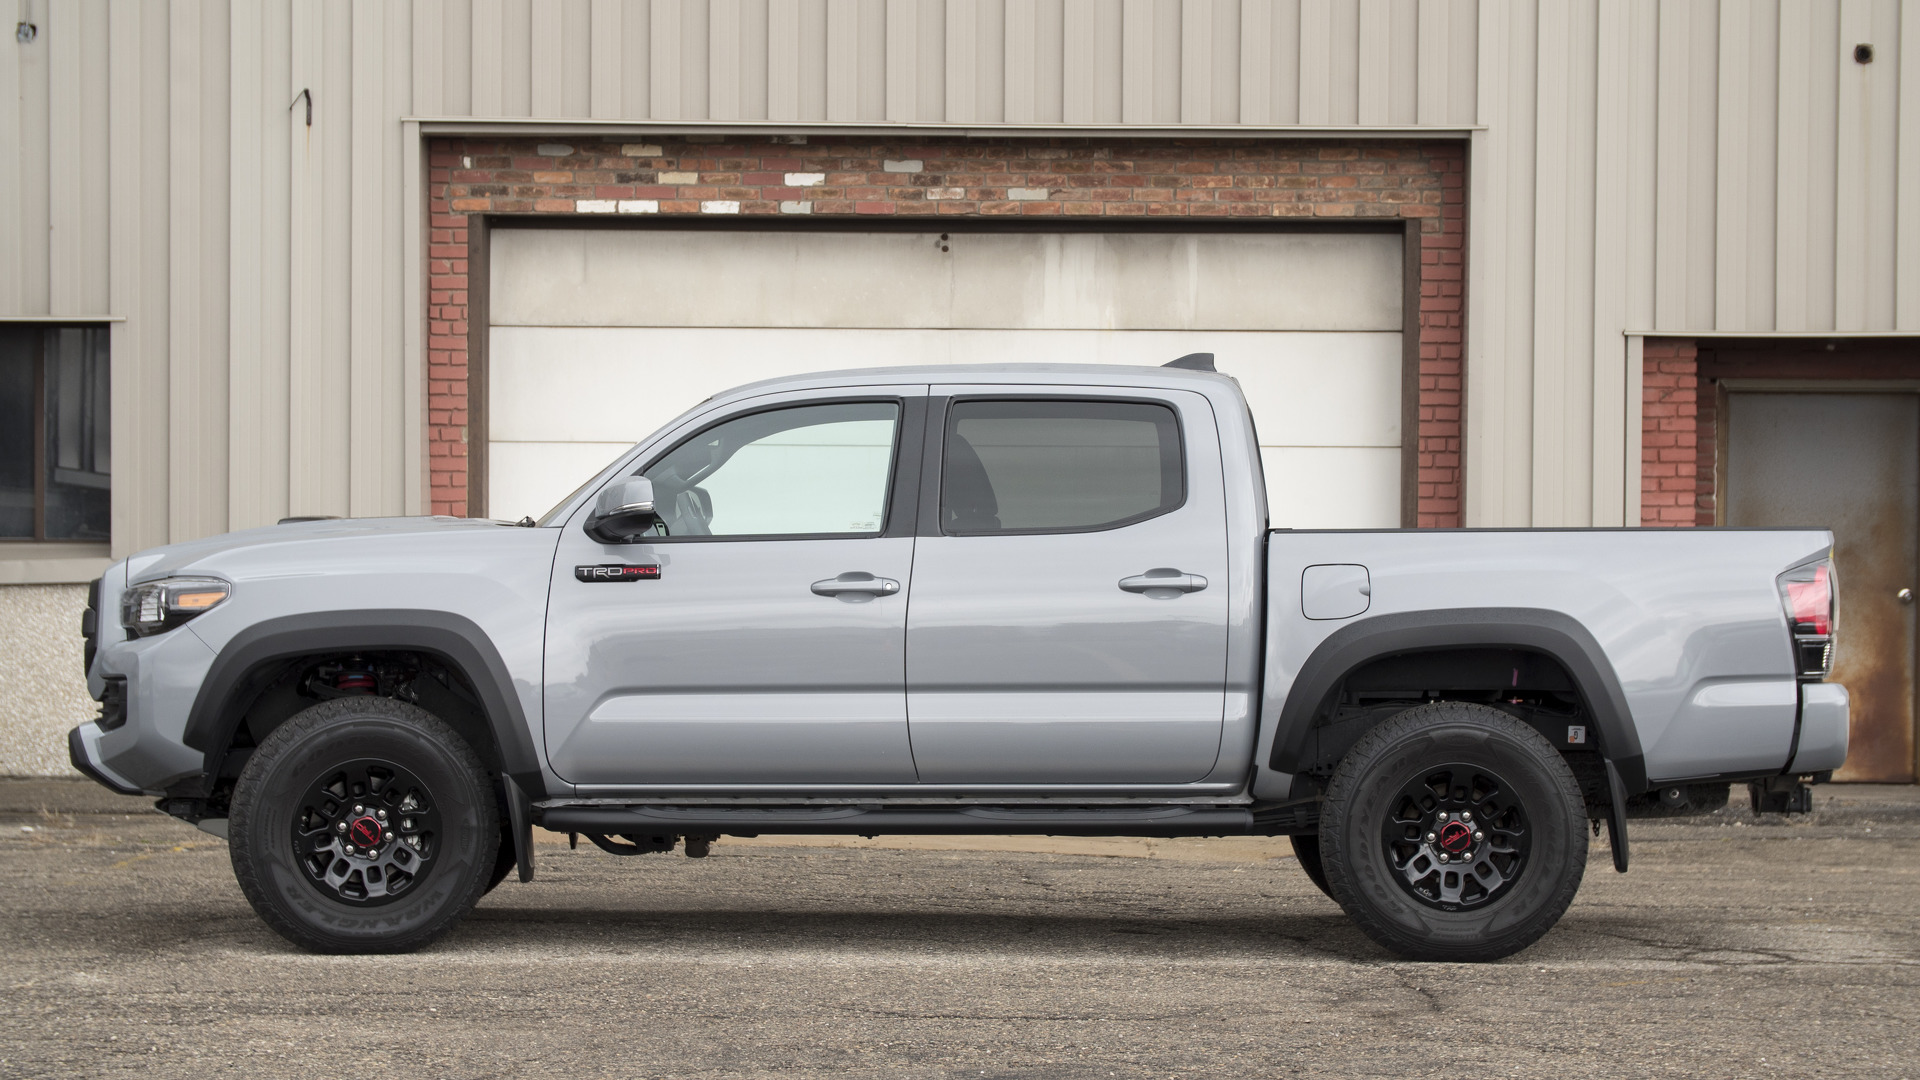 2017 Toyota Tacoma Trd Pro For Sale >> 2017 Toyota Tacoma Trd Pro Why Buy